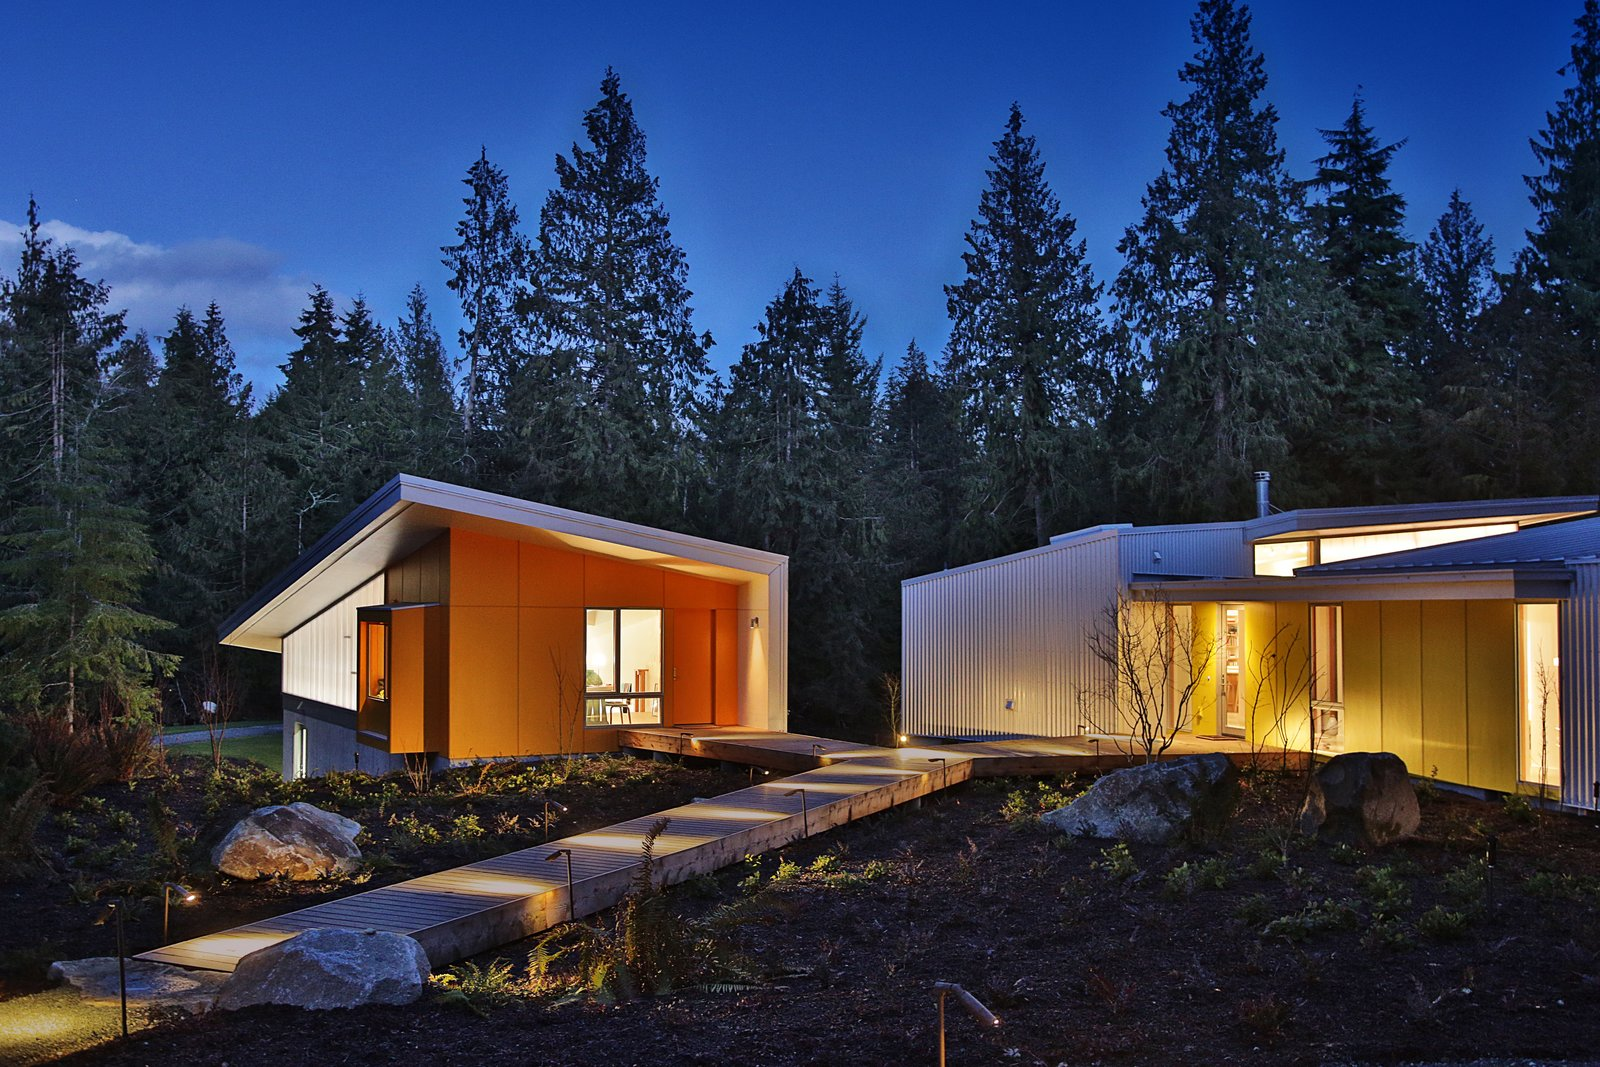 Exterior, House Building Type, and Metal Siding Material At night, the studios are lightboxes against the dark forest.  Whidbey Artists' Retreat by Prentiss + Balance + Wickline Architects